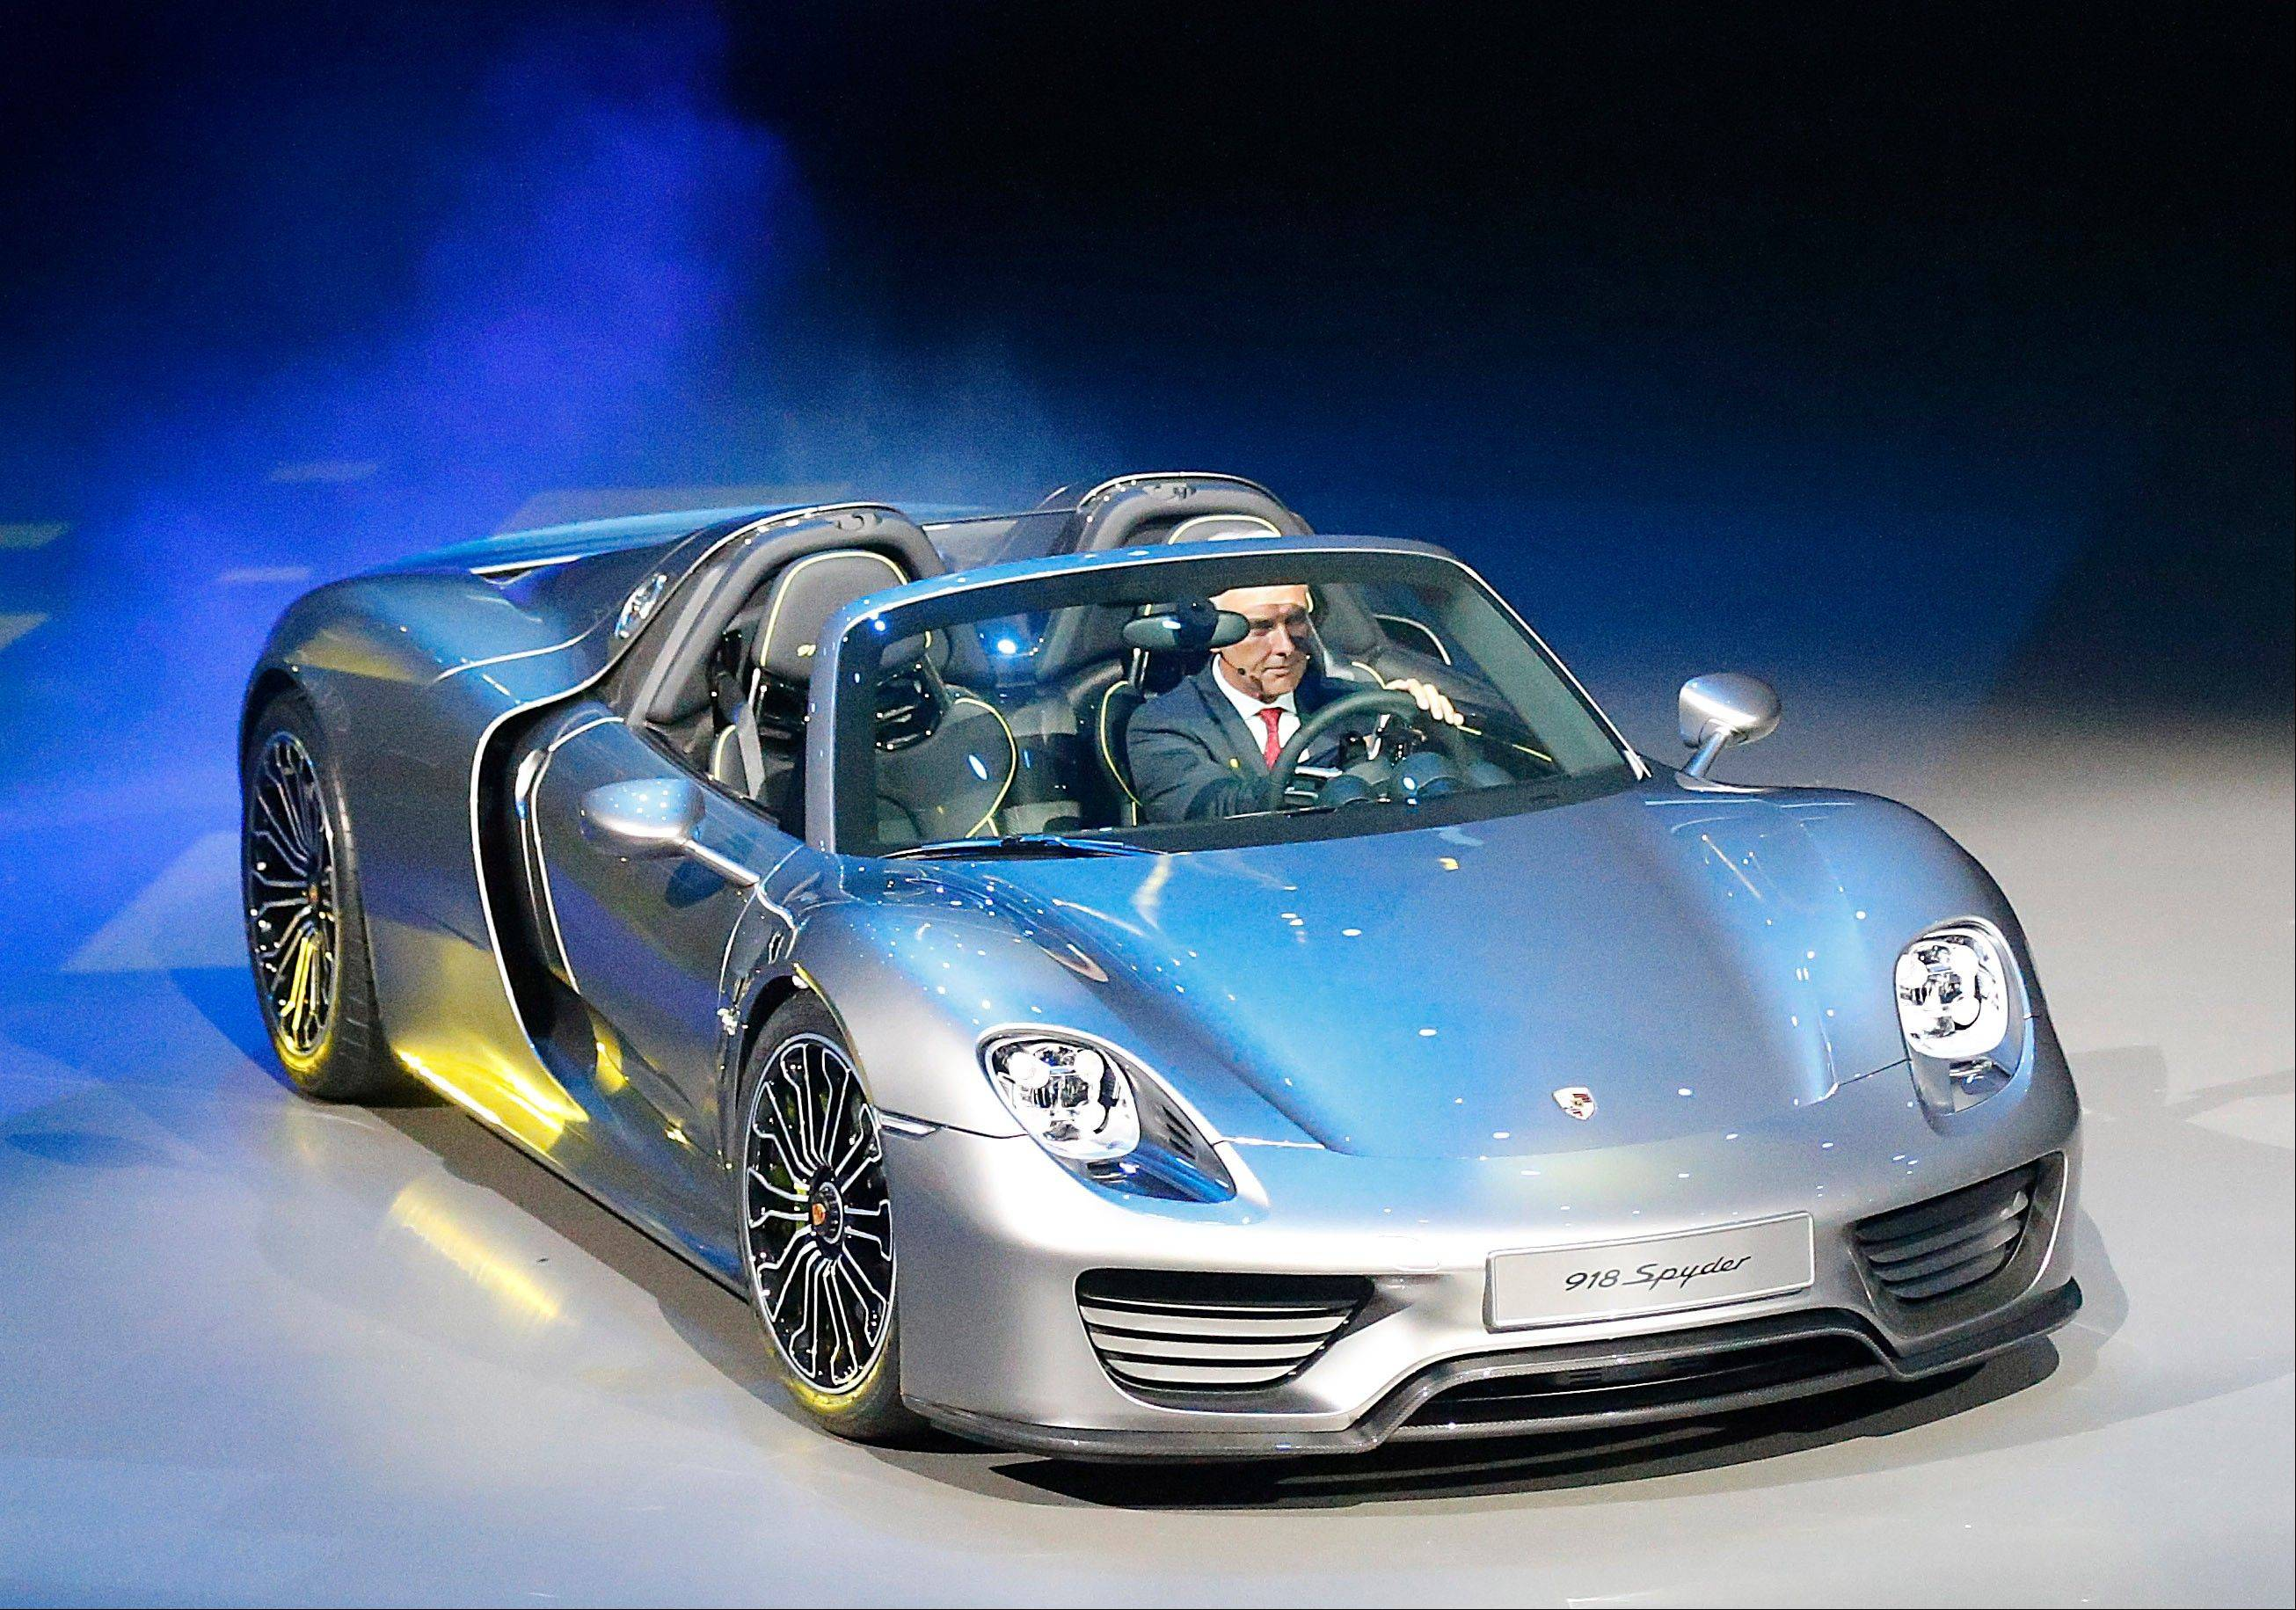 Porsche AG CEO Matthias Mueller steers the new Porsche 918 Spyder during a preview by the Volkswagen Group prior to the 65th Frankfurt Auto Show in Frankfurt, Germany.